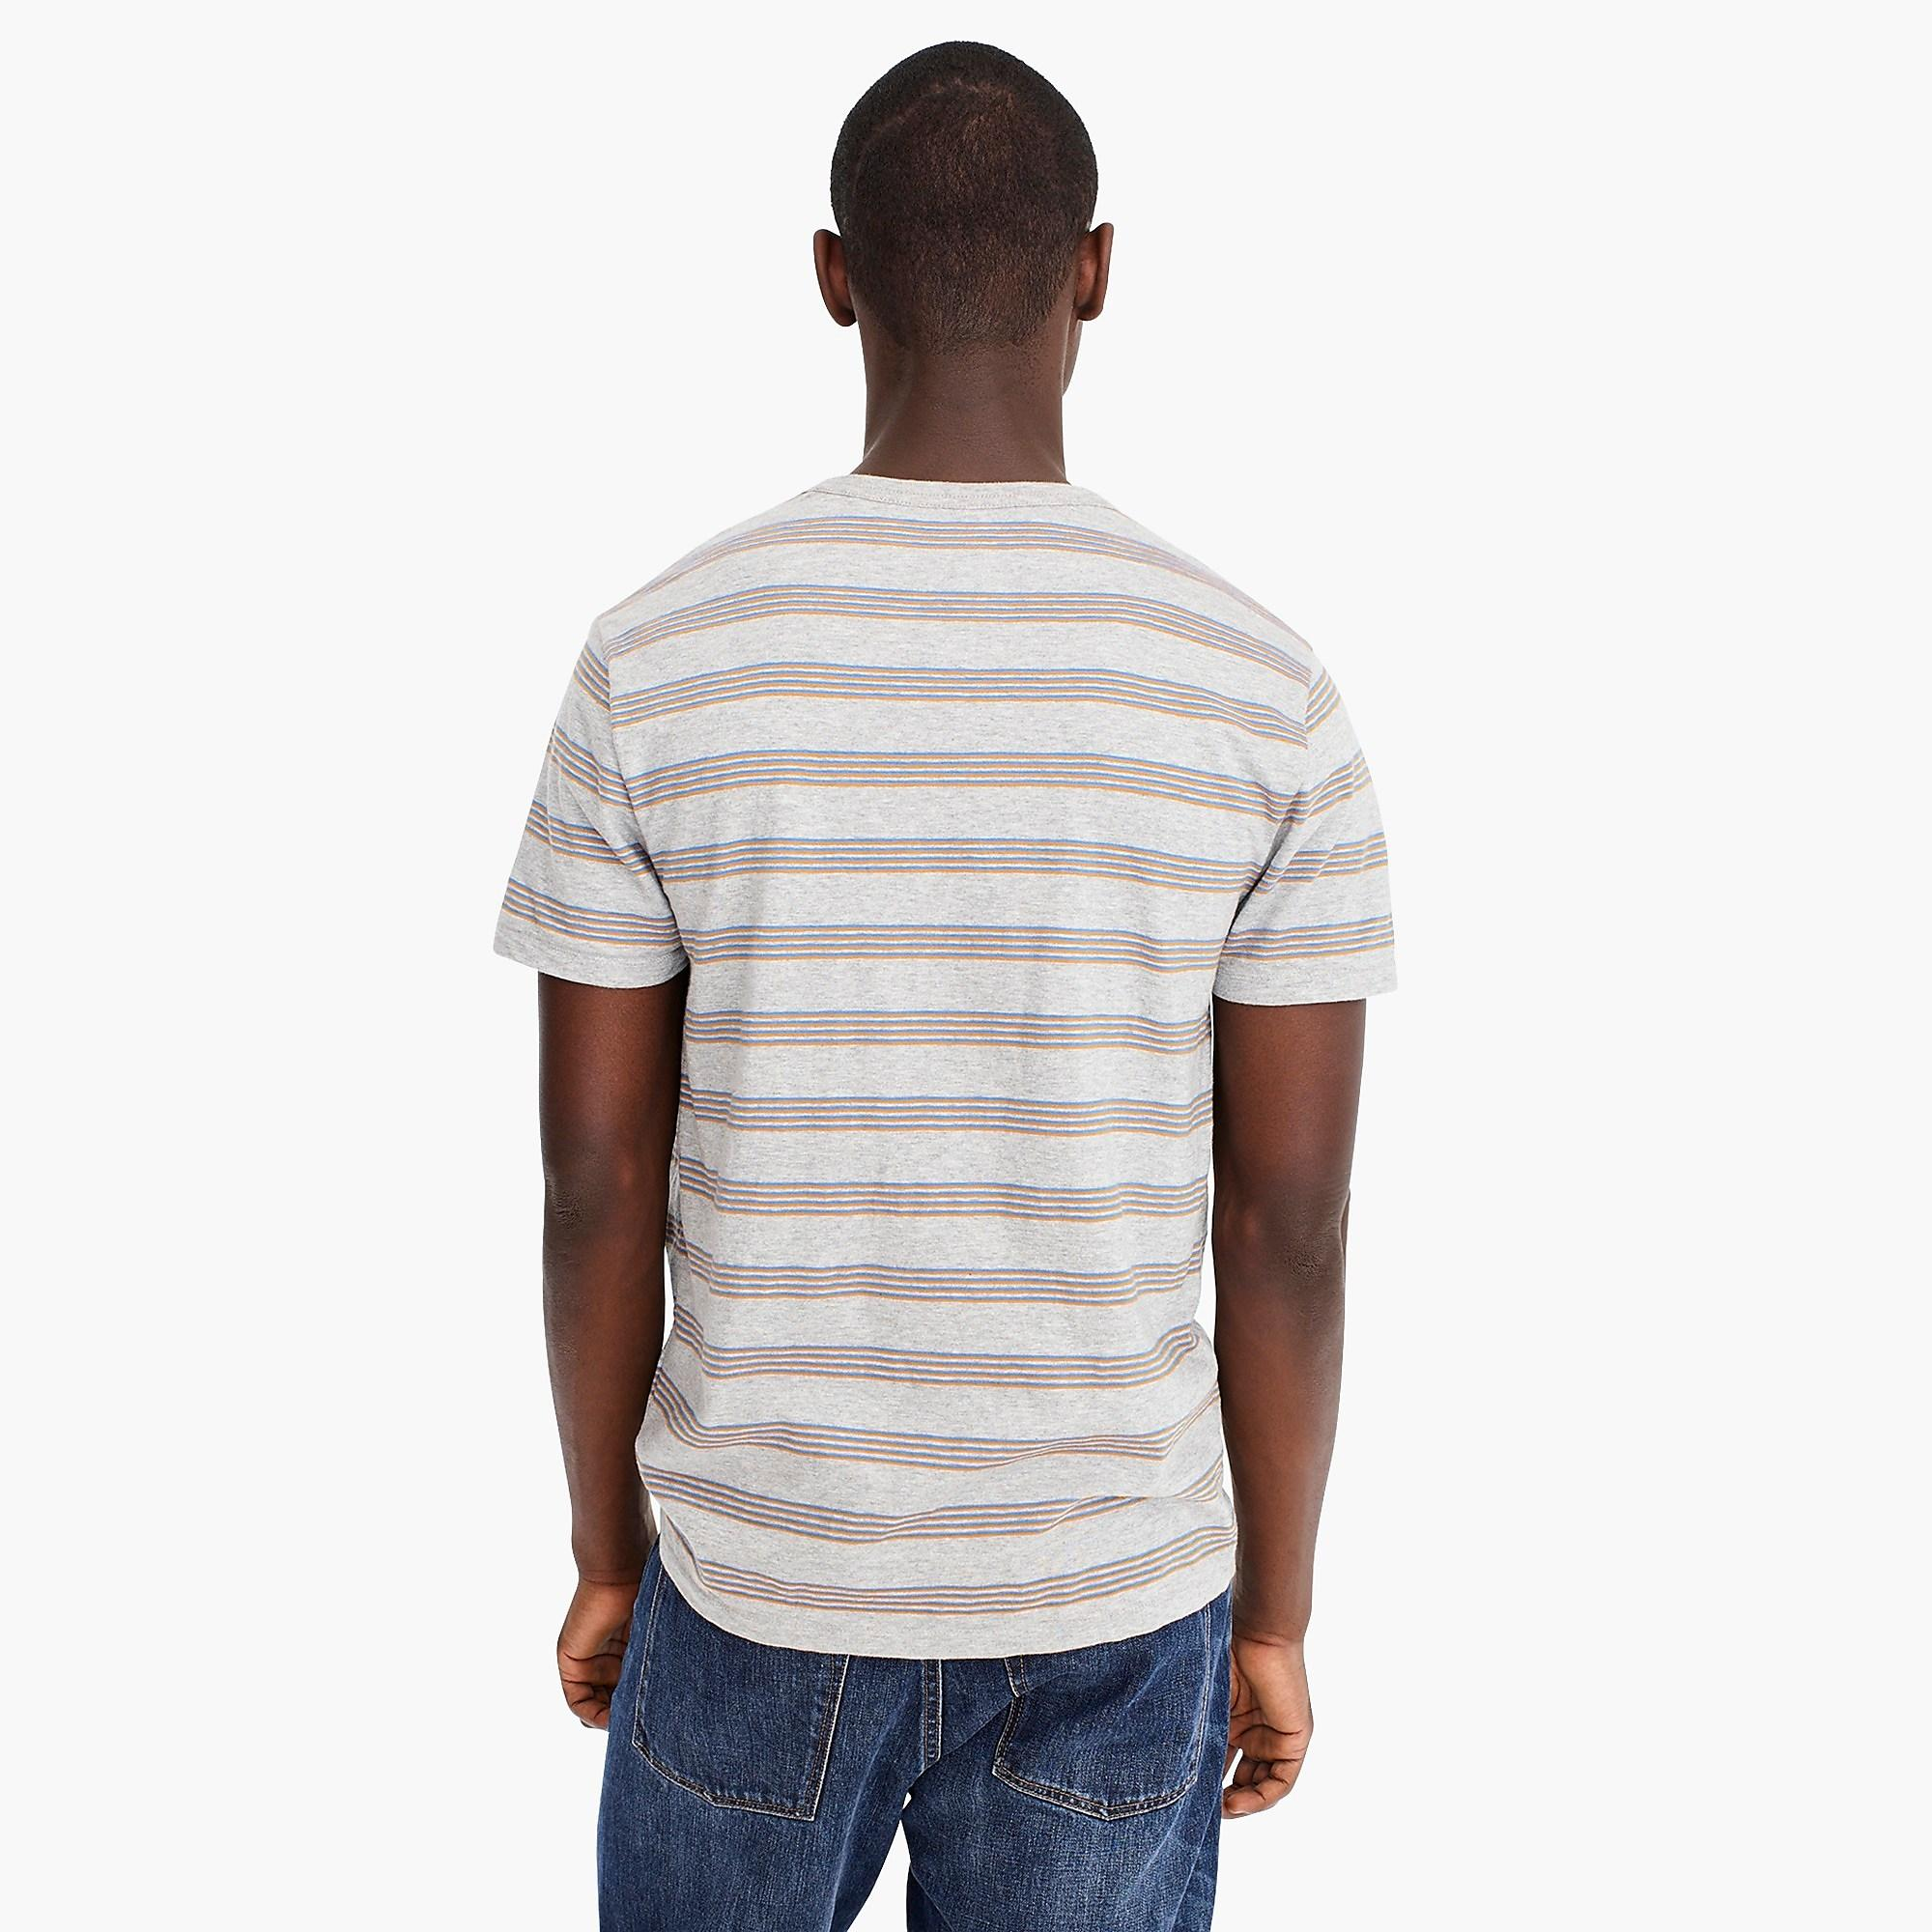 3382ab9e2853 Lyst - J.Crew Slub Jersey Pocket T-shirt In Quad Stripe in Gray for Men